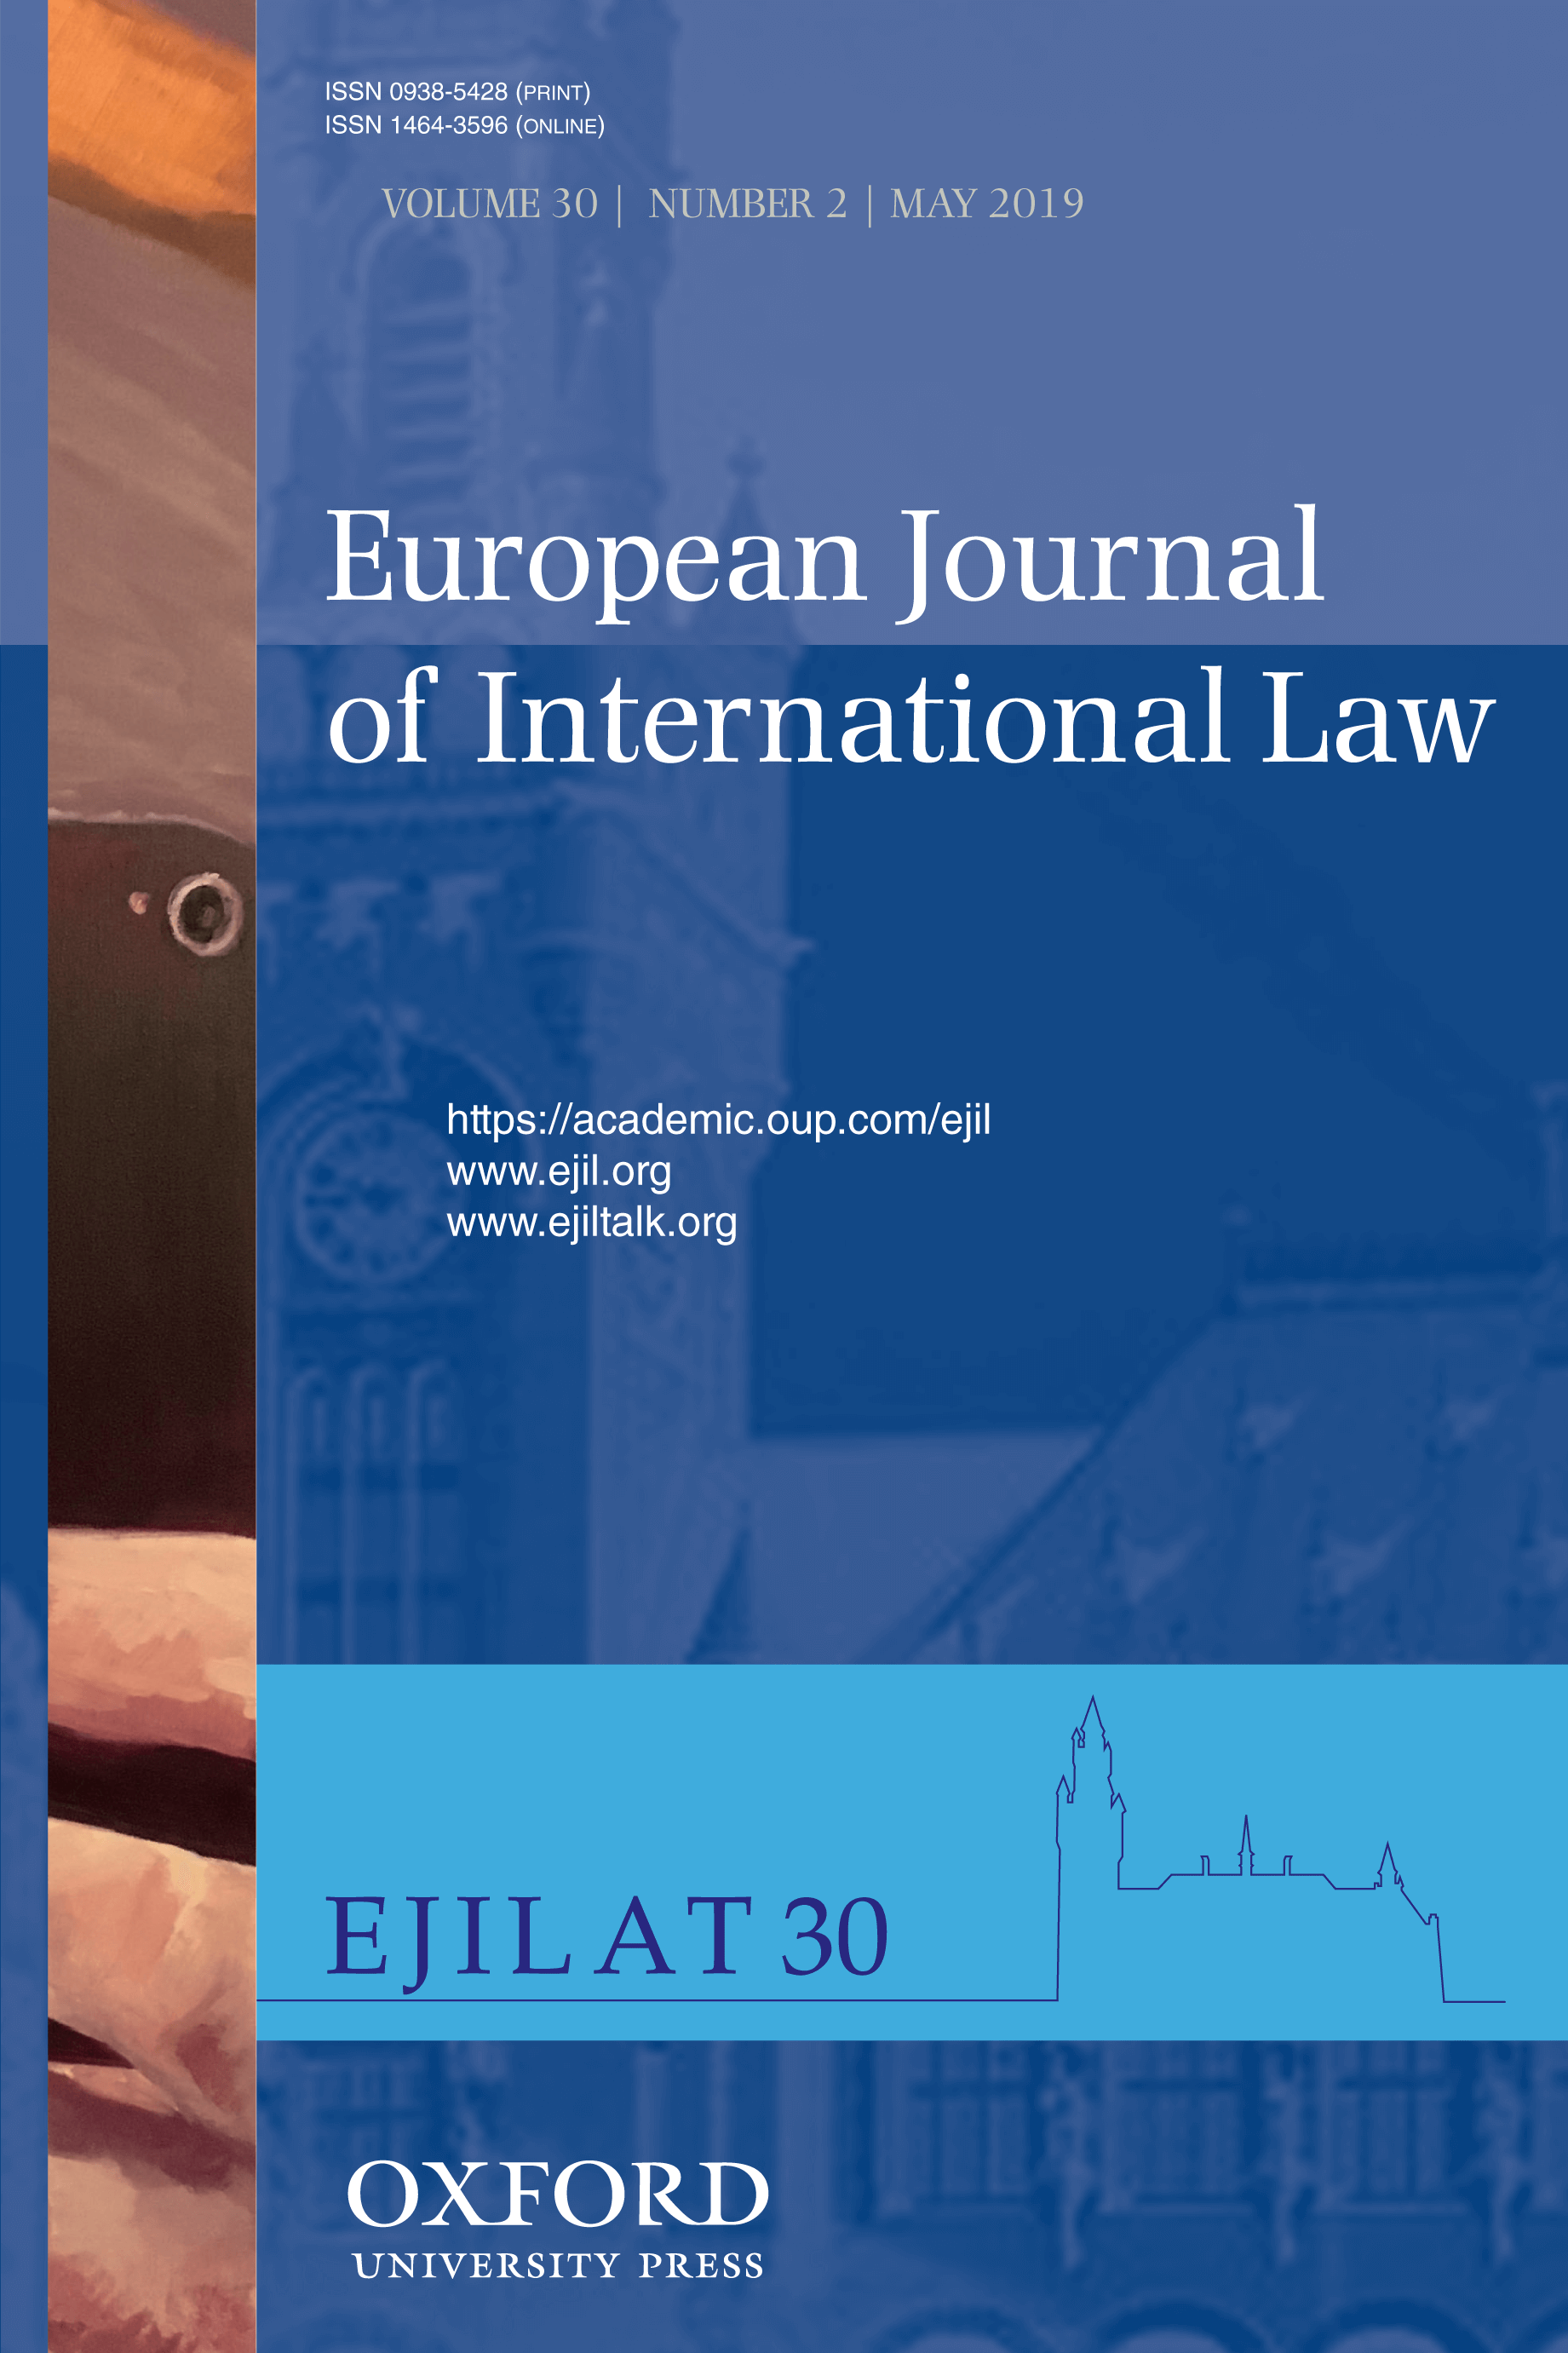 European Journal of International Law - Volume 30, Issue 2, May 2019